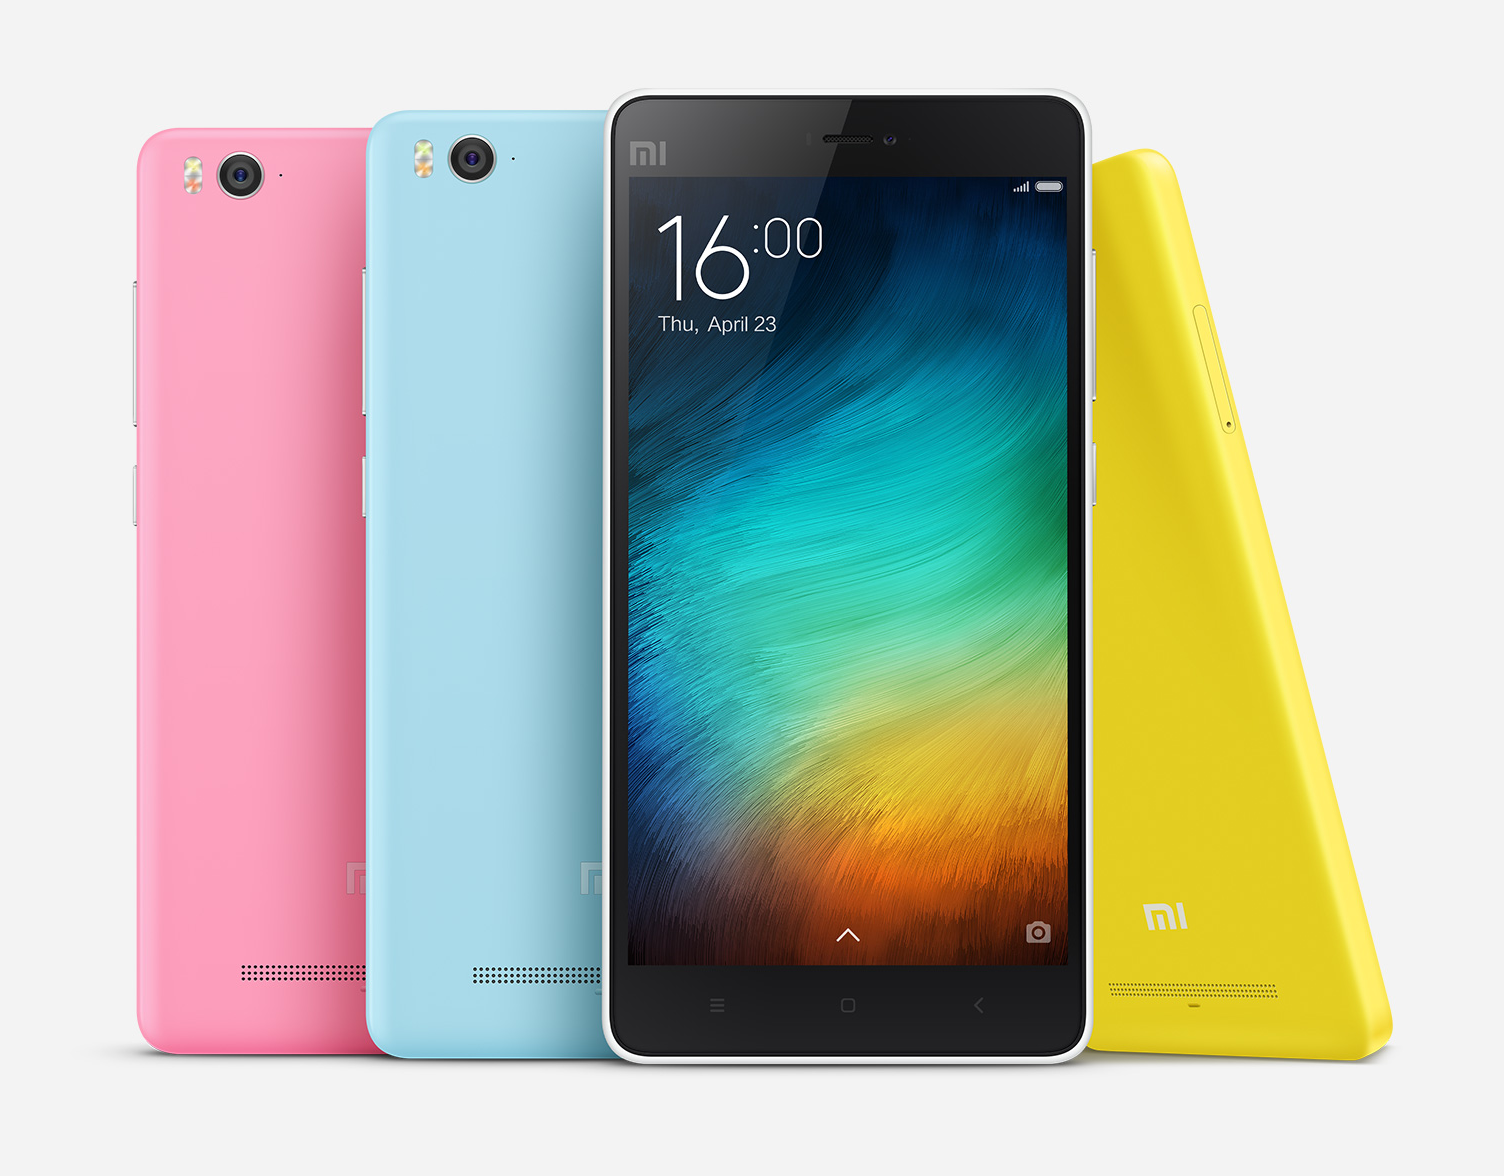 Xiaomi Mi 4i officially announced in India for Rs. 12,999, packs in